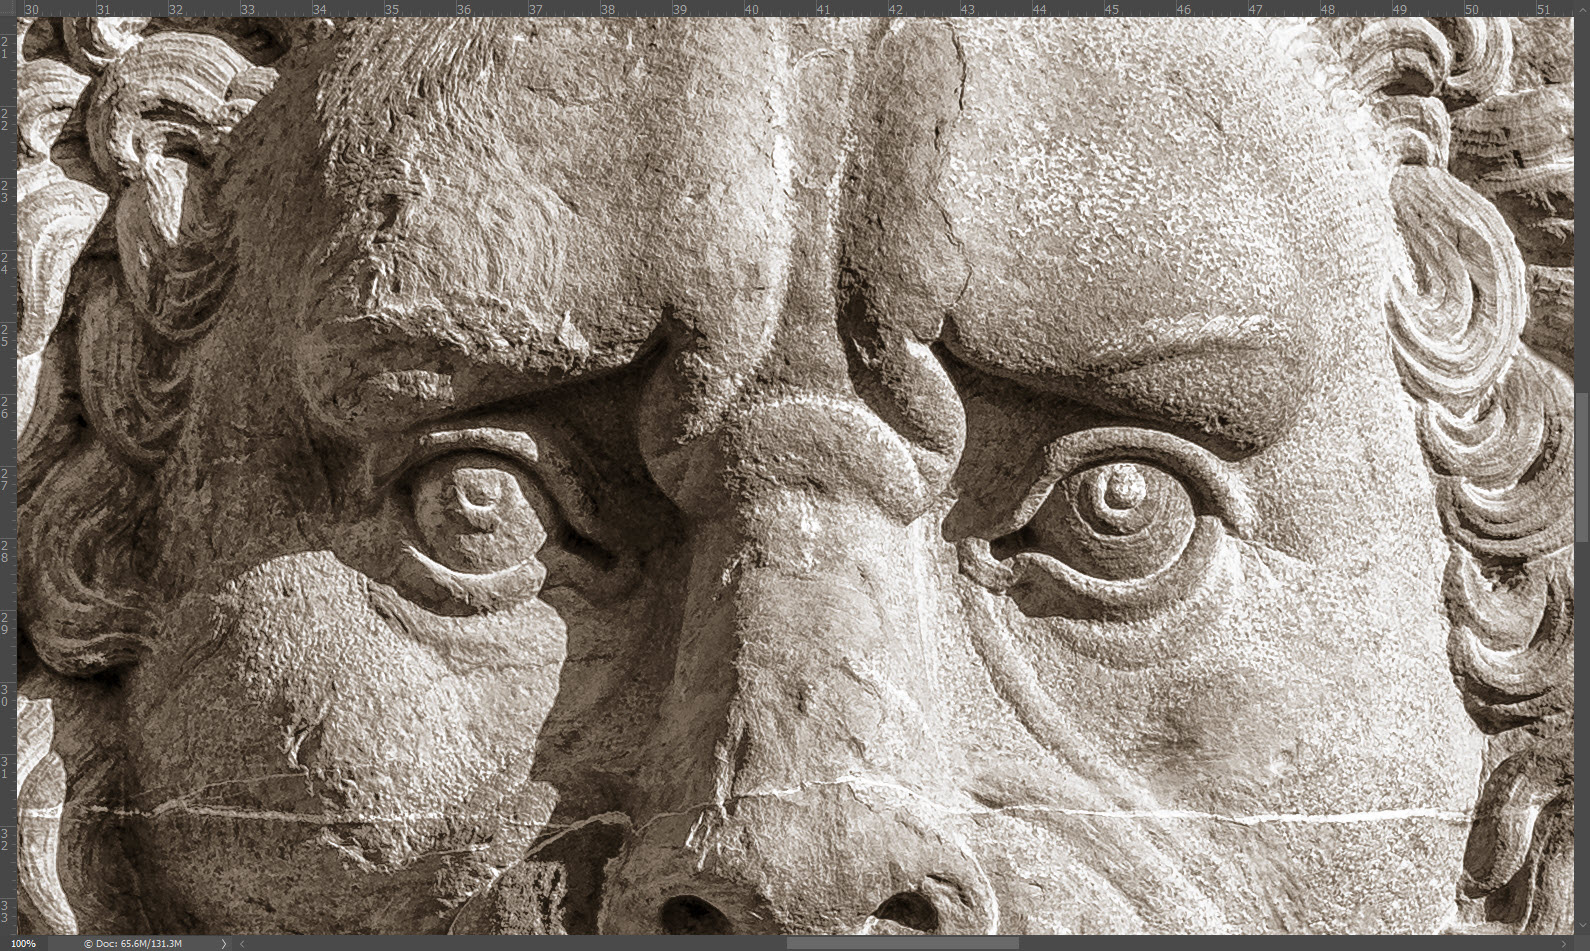 Sepia Tone Effect in Photoshop - Professional